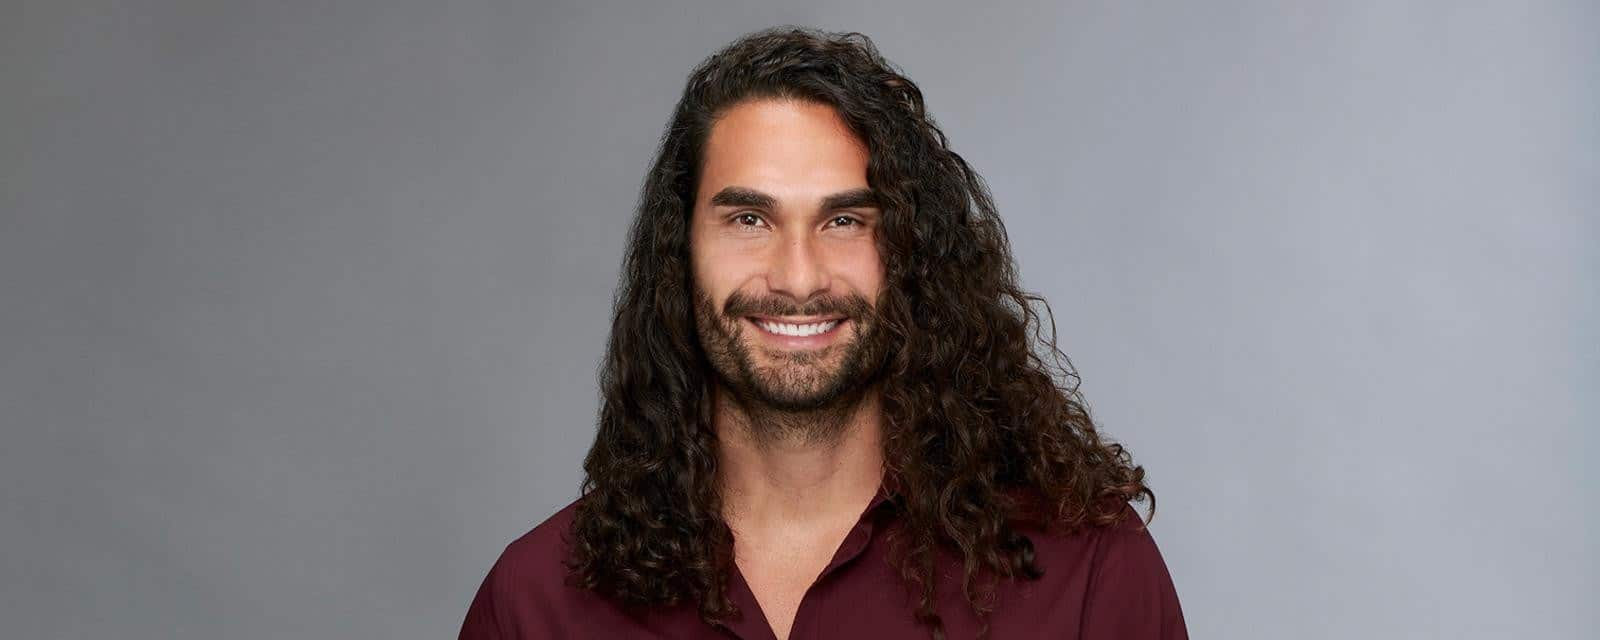 Leo Dottavio on The Bachelorette